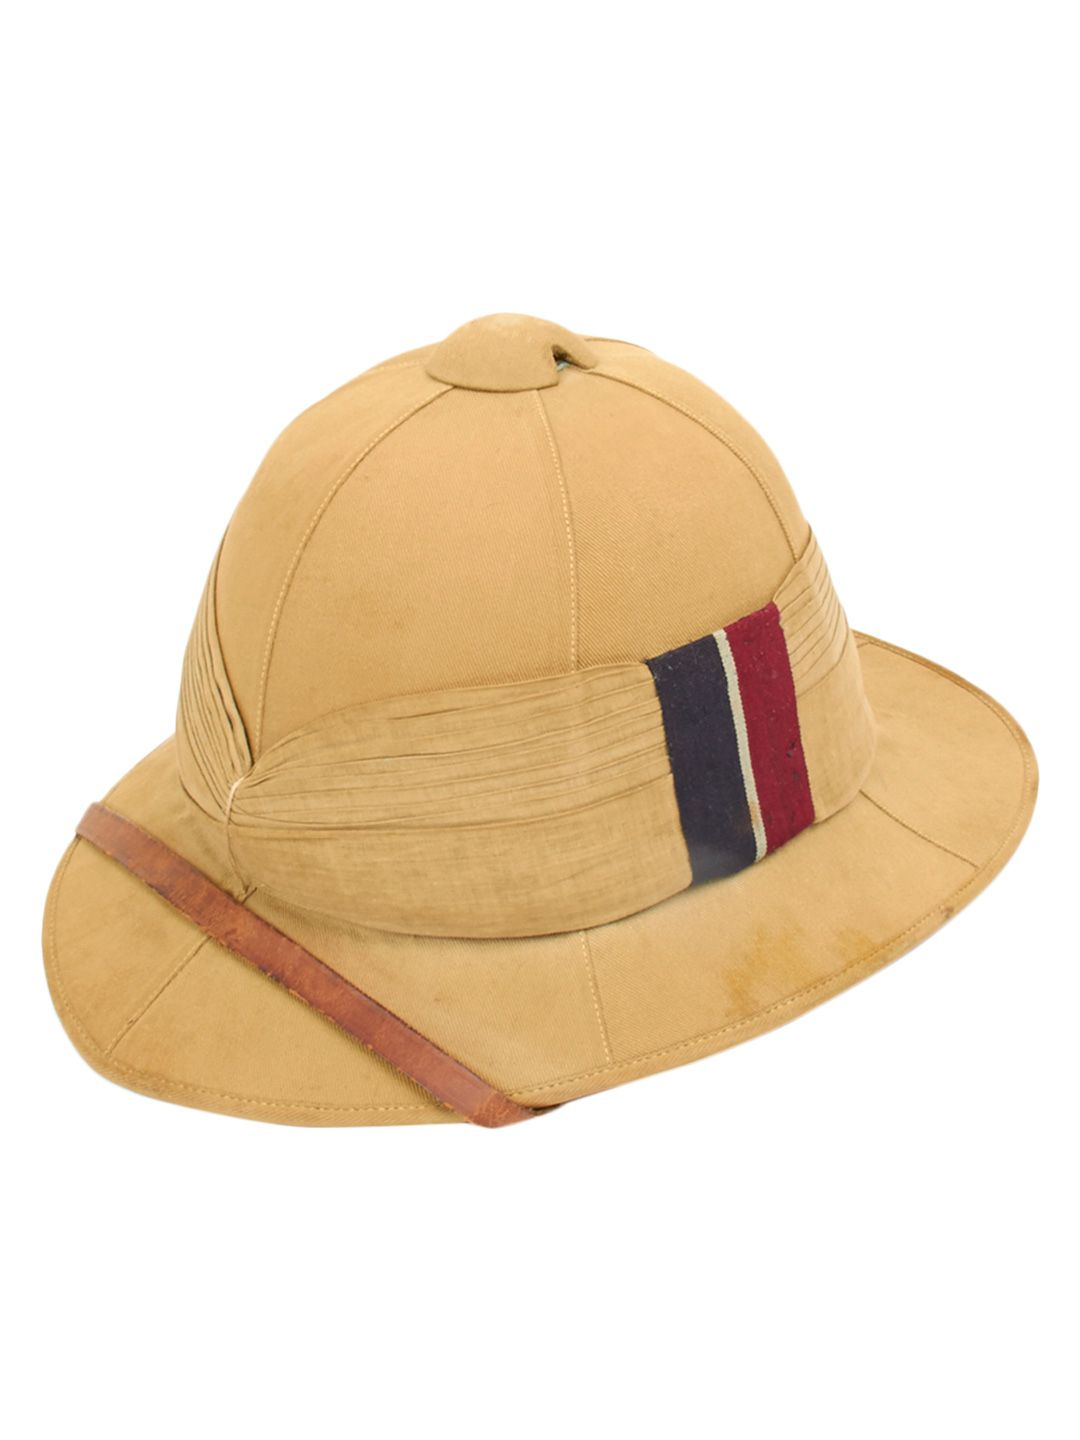 f4581fd9 Original British WWI Royal Flying Corps Pith Sun Helmet with Carry Bag-  Dated 1915 by INTERNATIONAL MILITARY ANTIQUE at Gilt